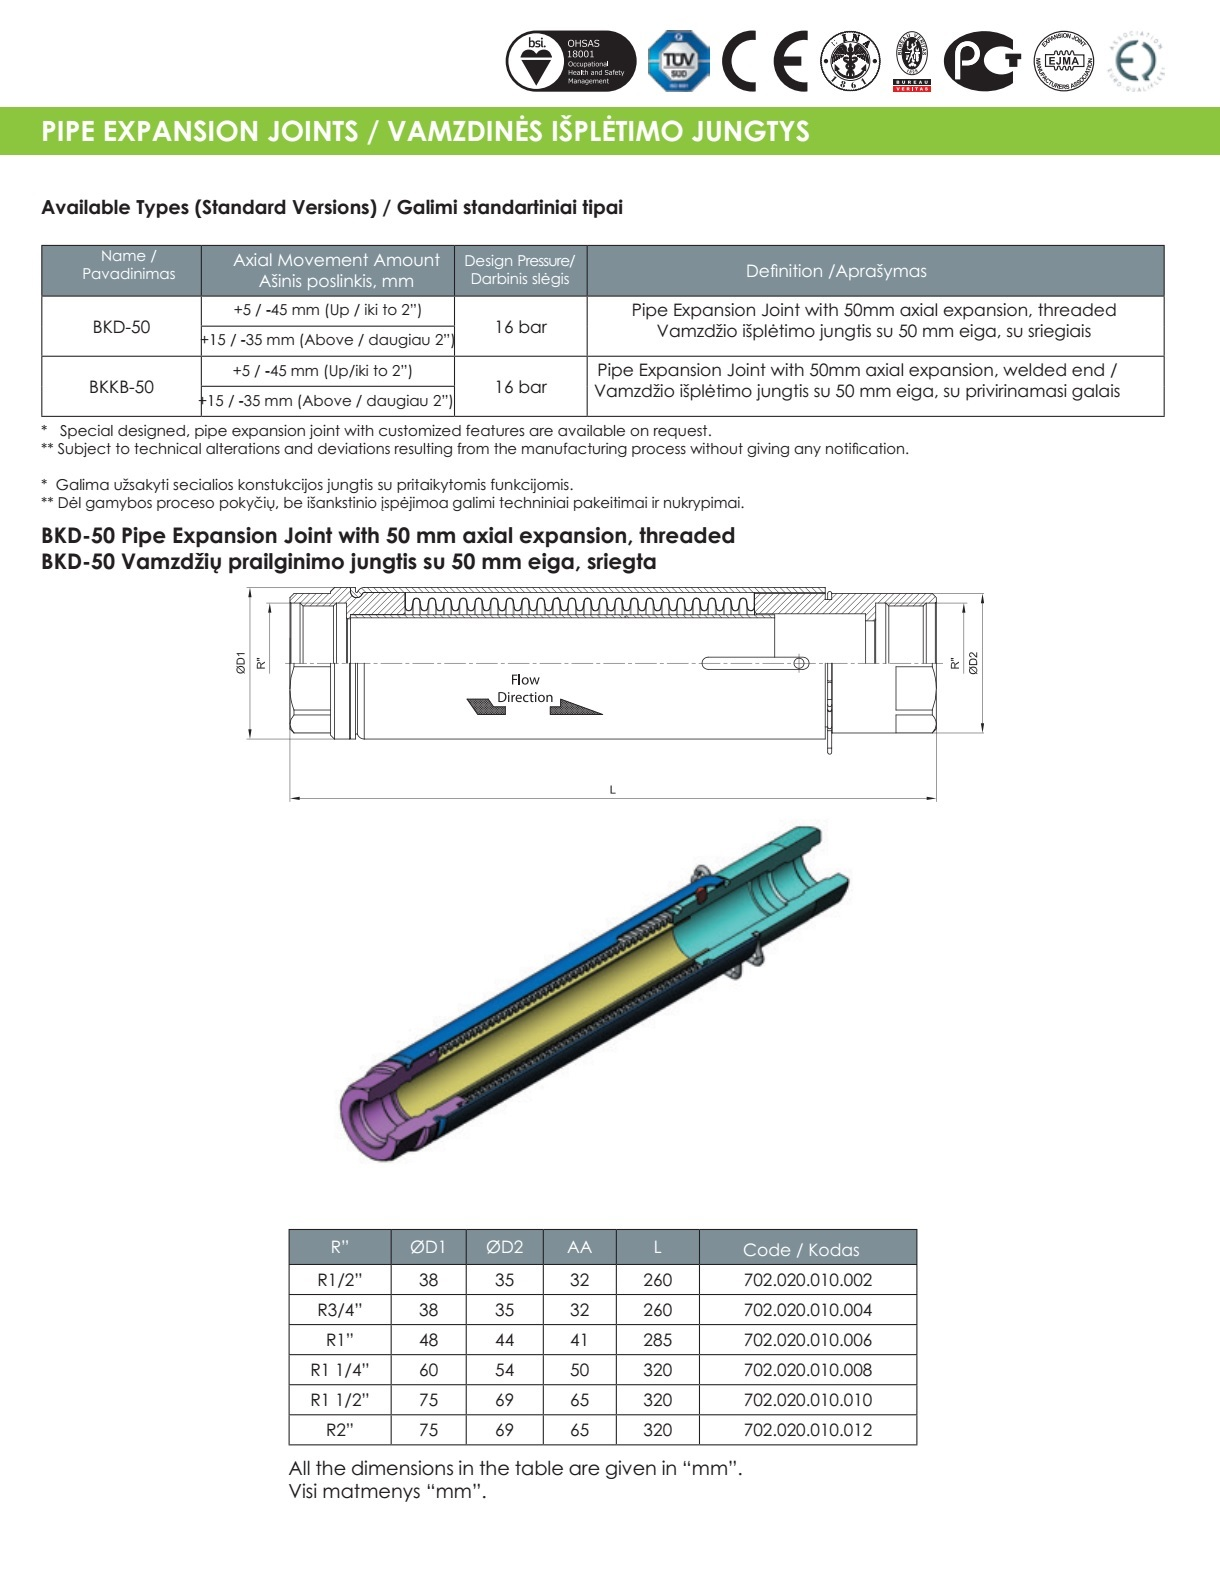 BKD-50 Pipe Expansion Joint with 50 mm axial expansion